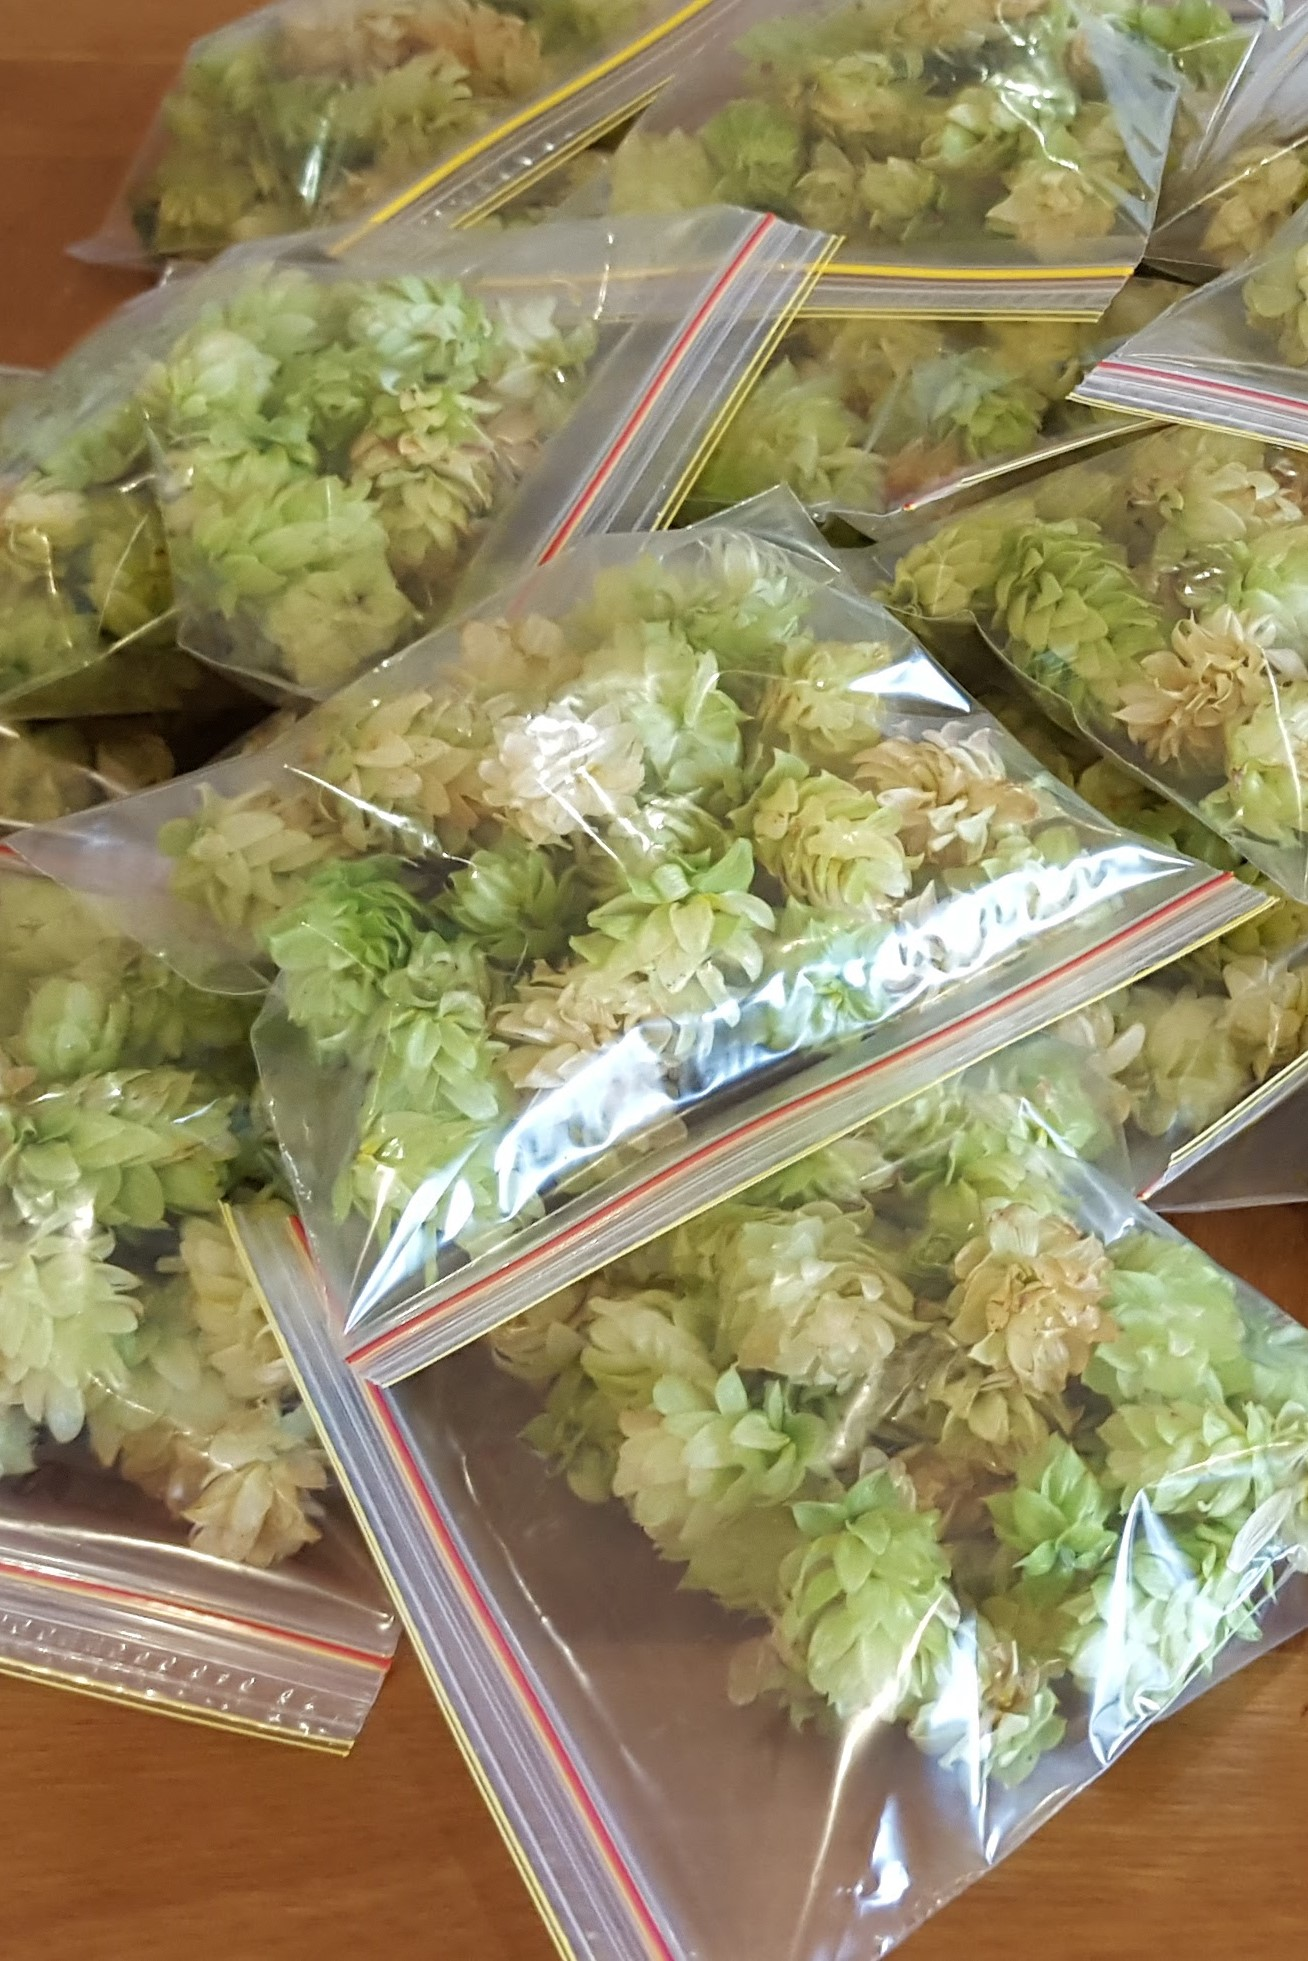 Homegrown Hops (added to the boil)